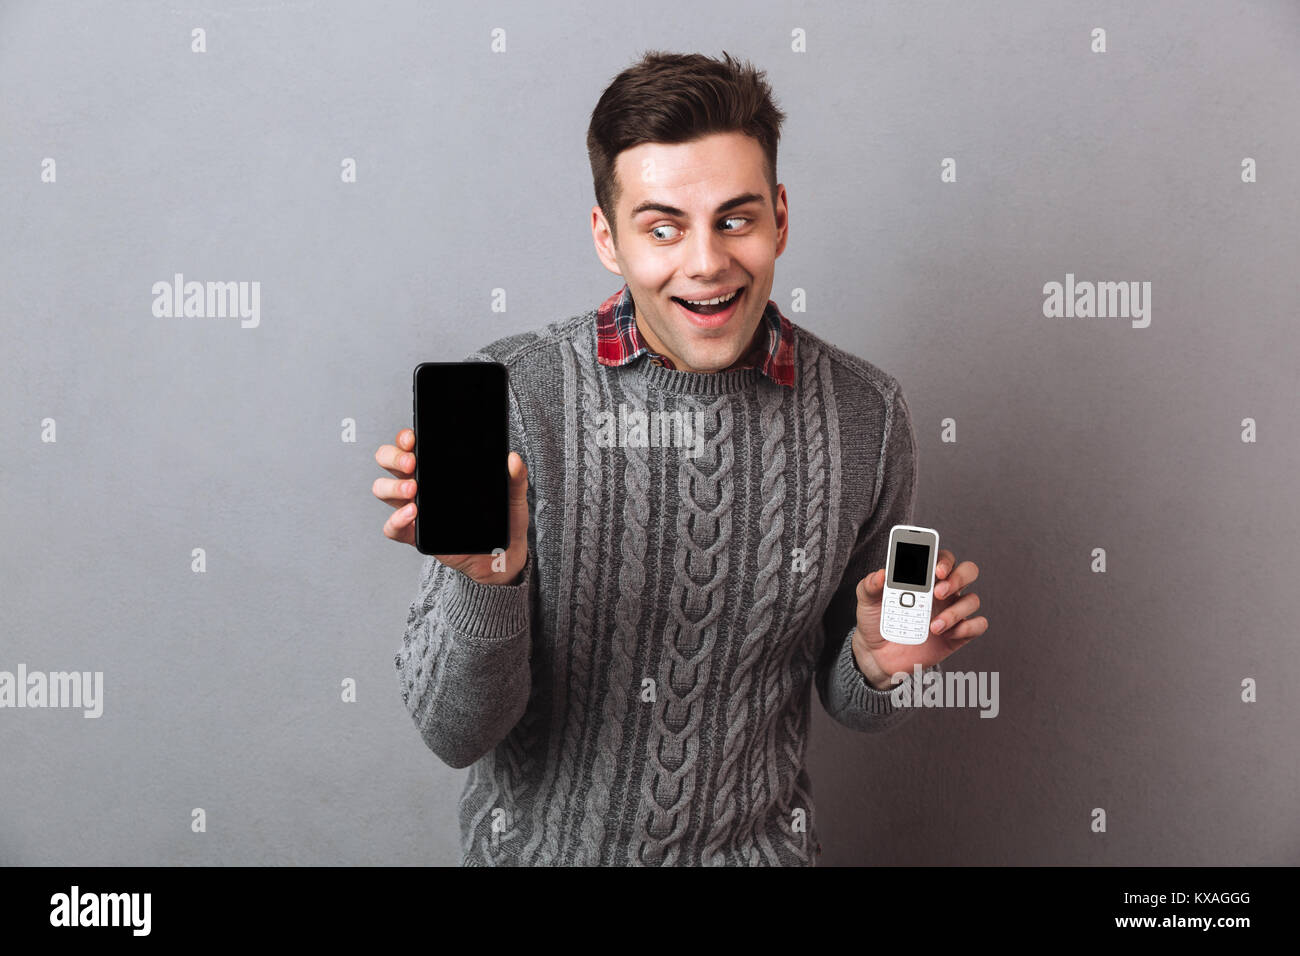 Intrigued man in sweater choosing between smartphones over gray background - Stock Image